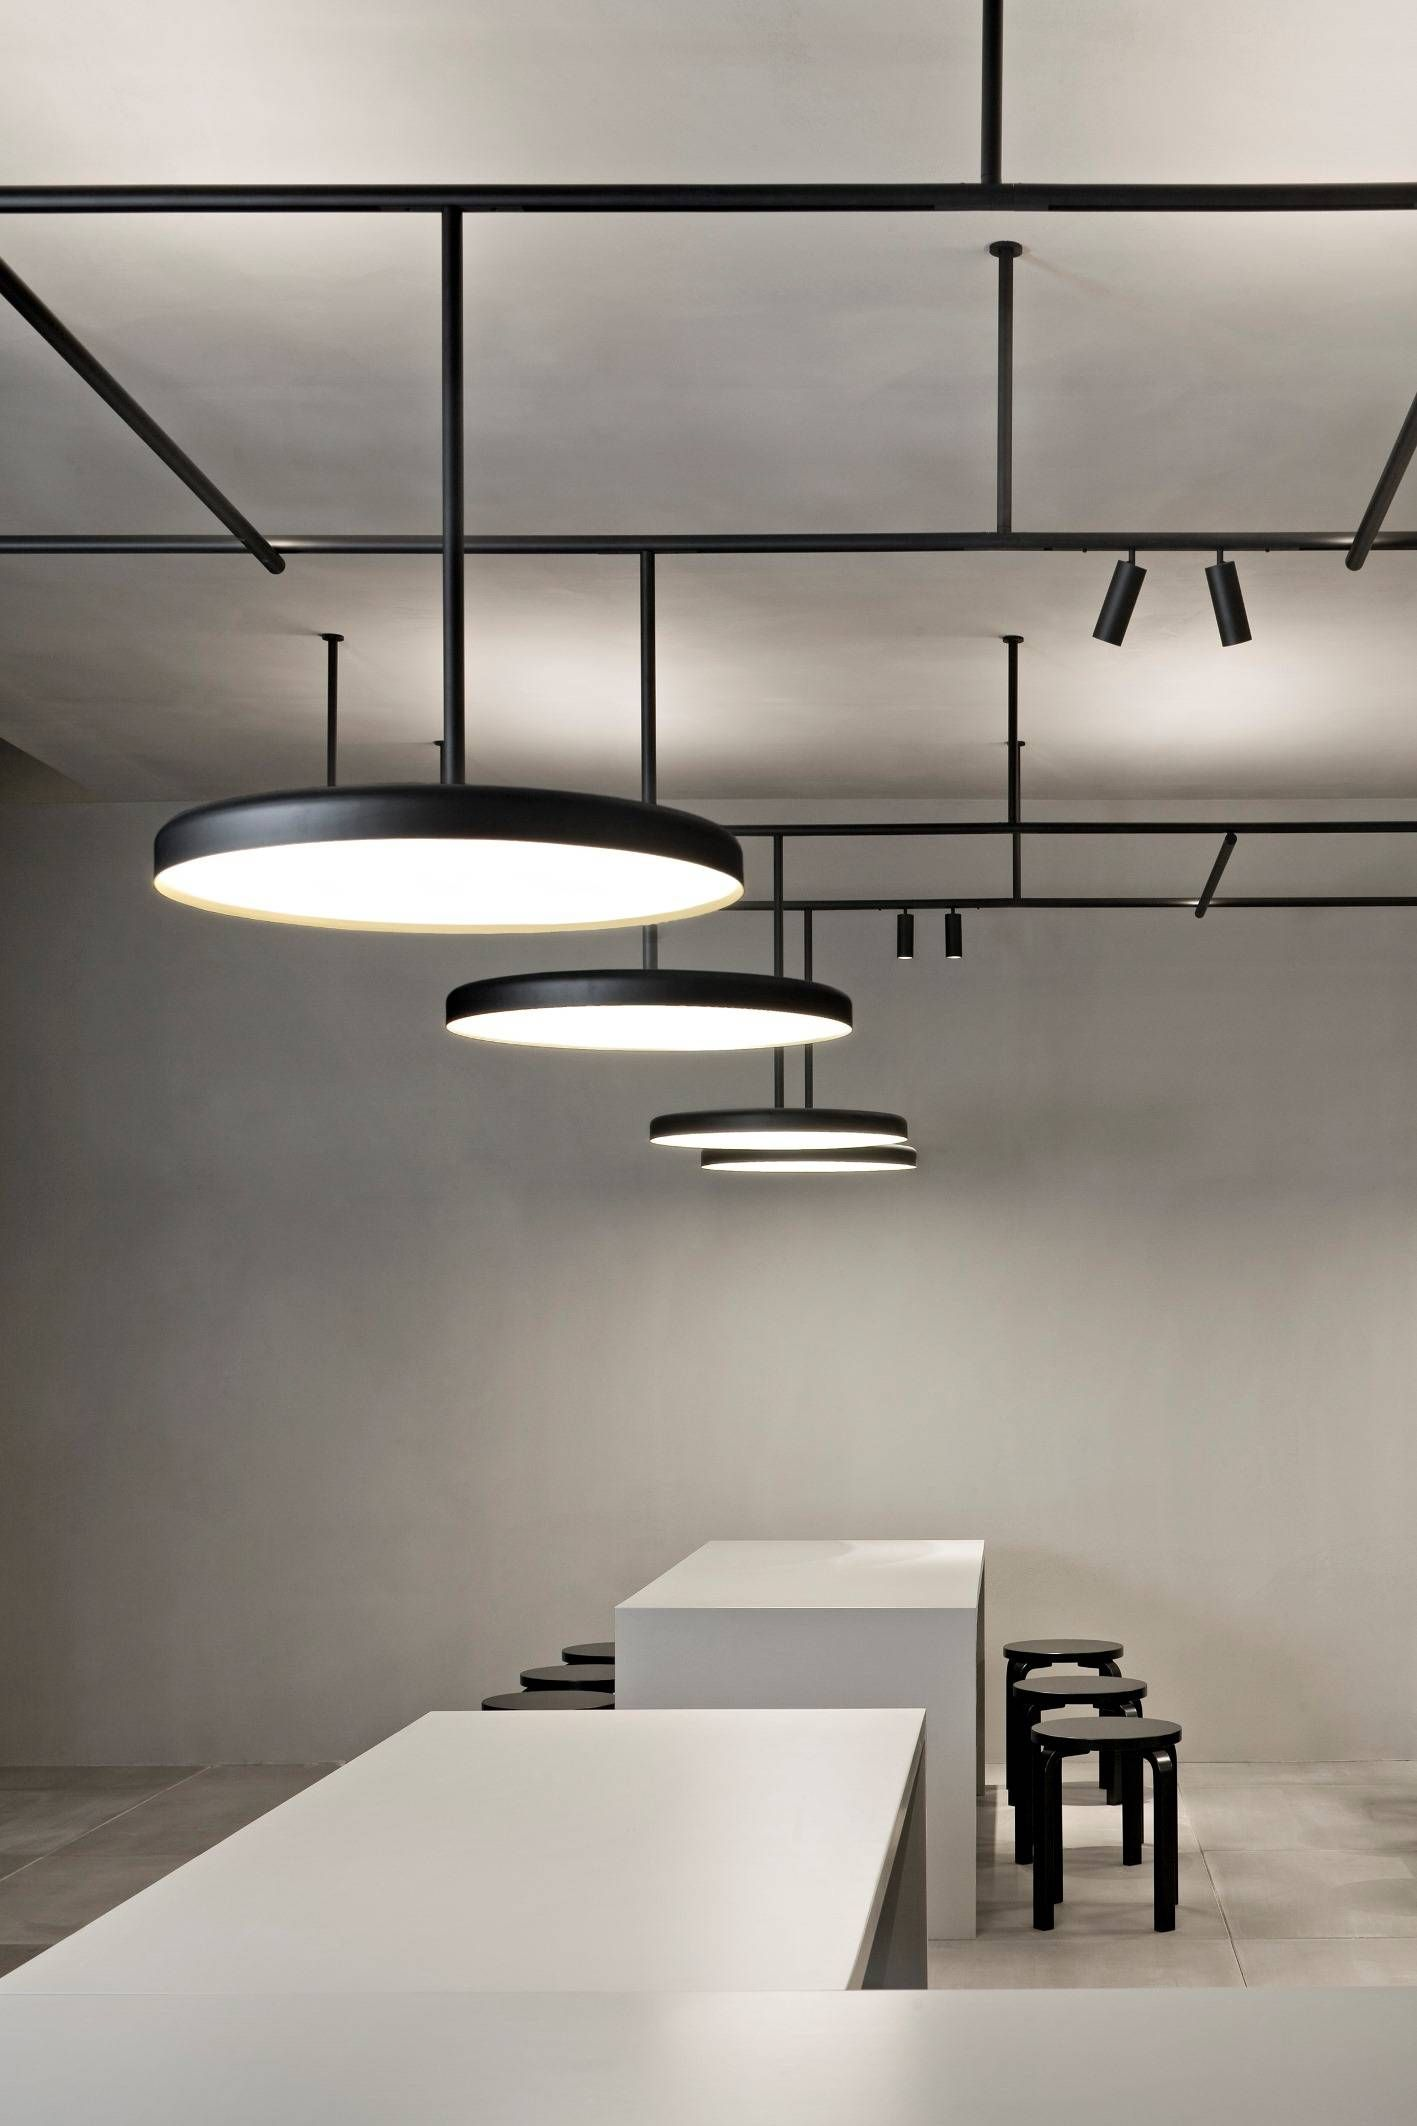 Flos Stand x VVD - Minimalissimo #lightingdesign